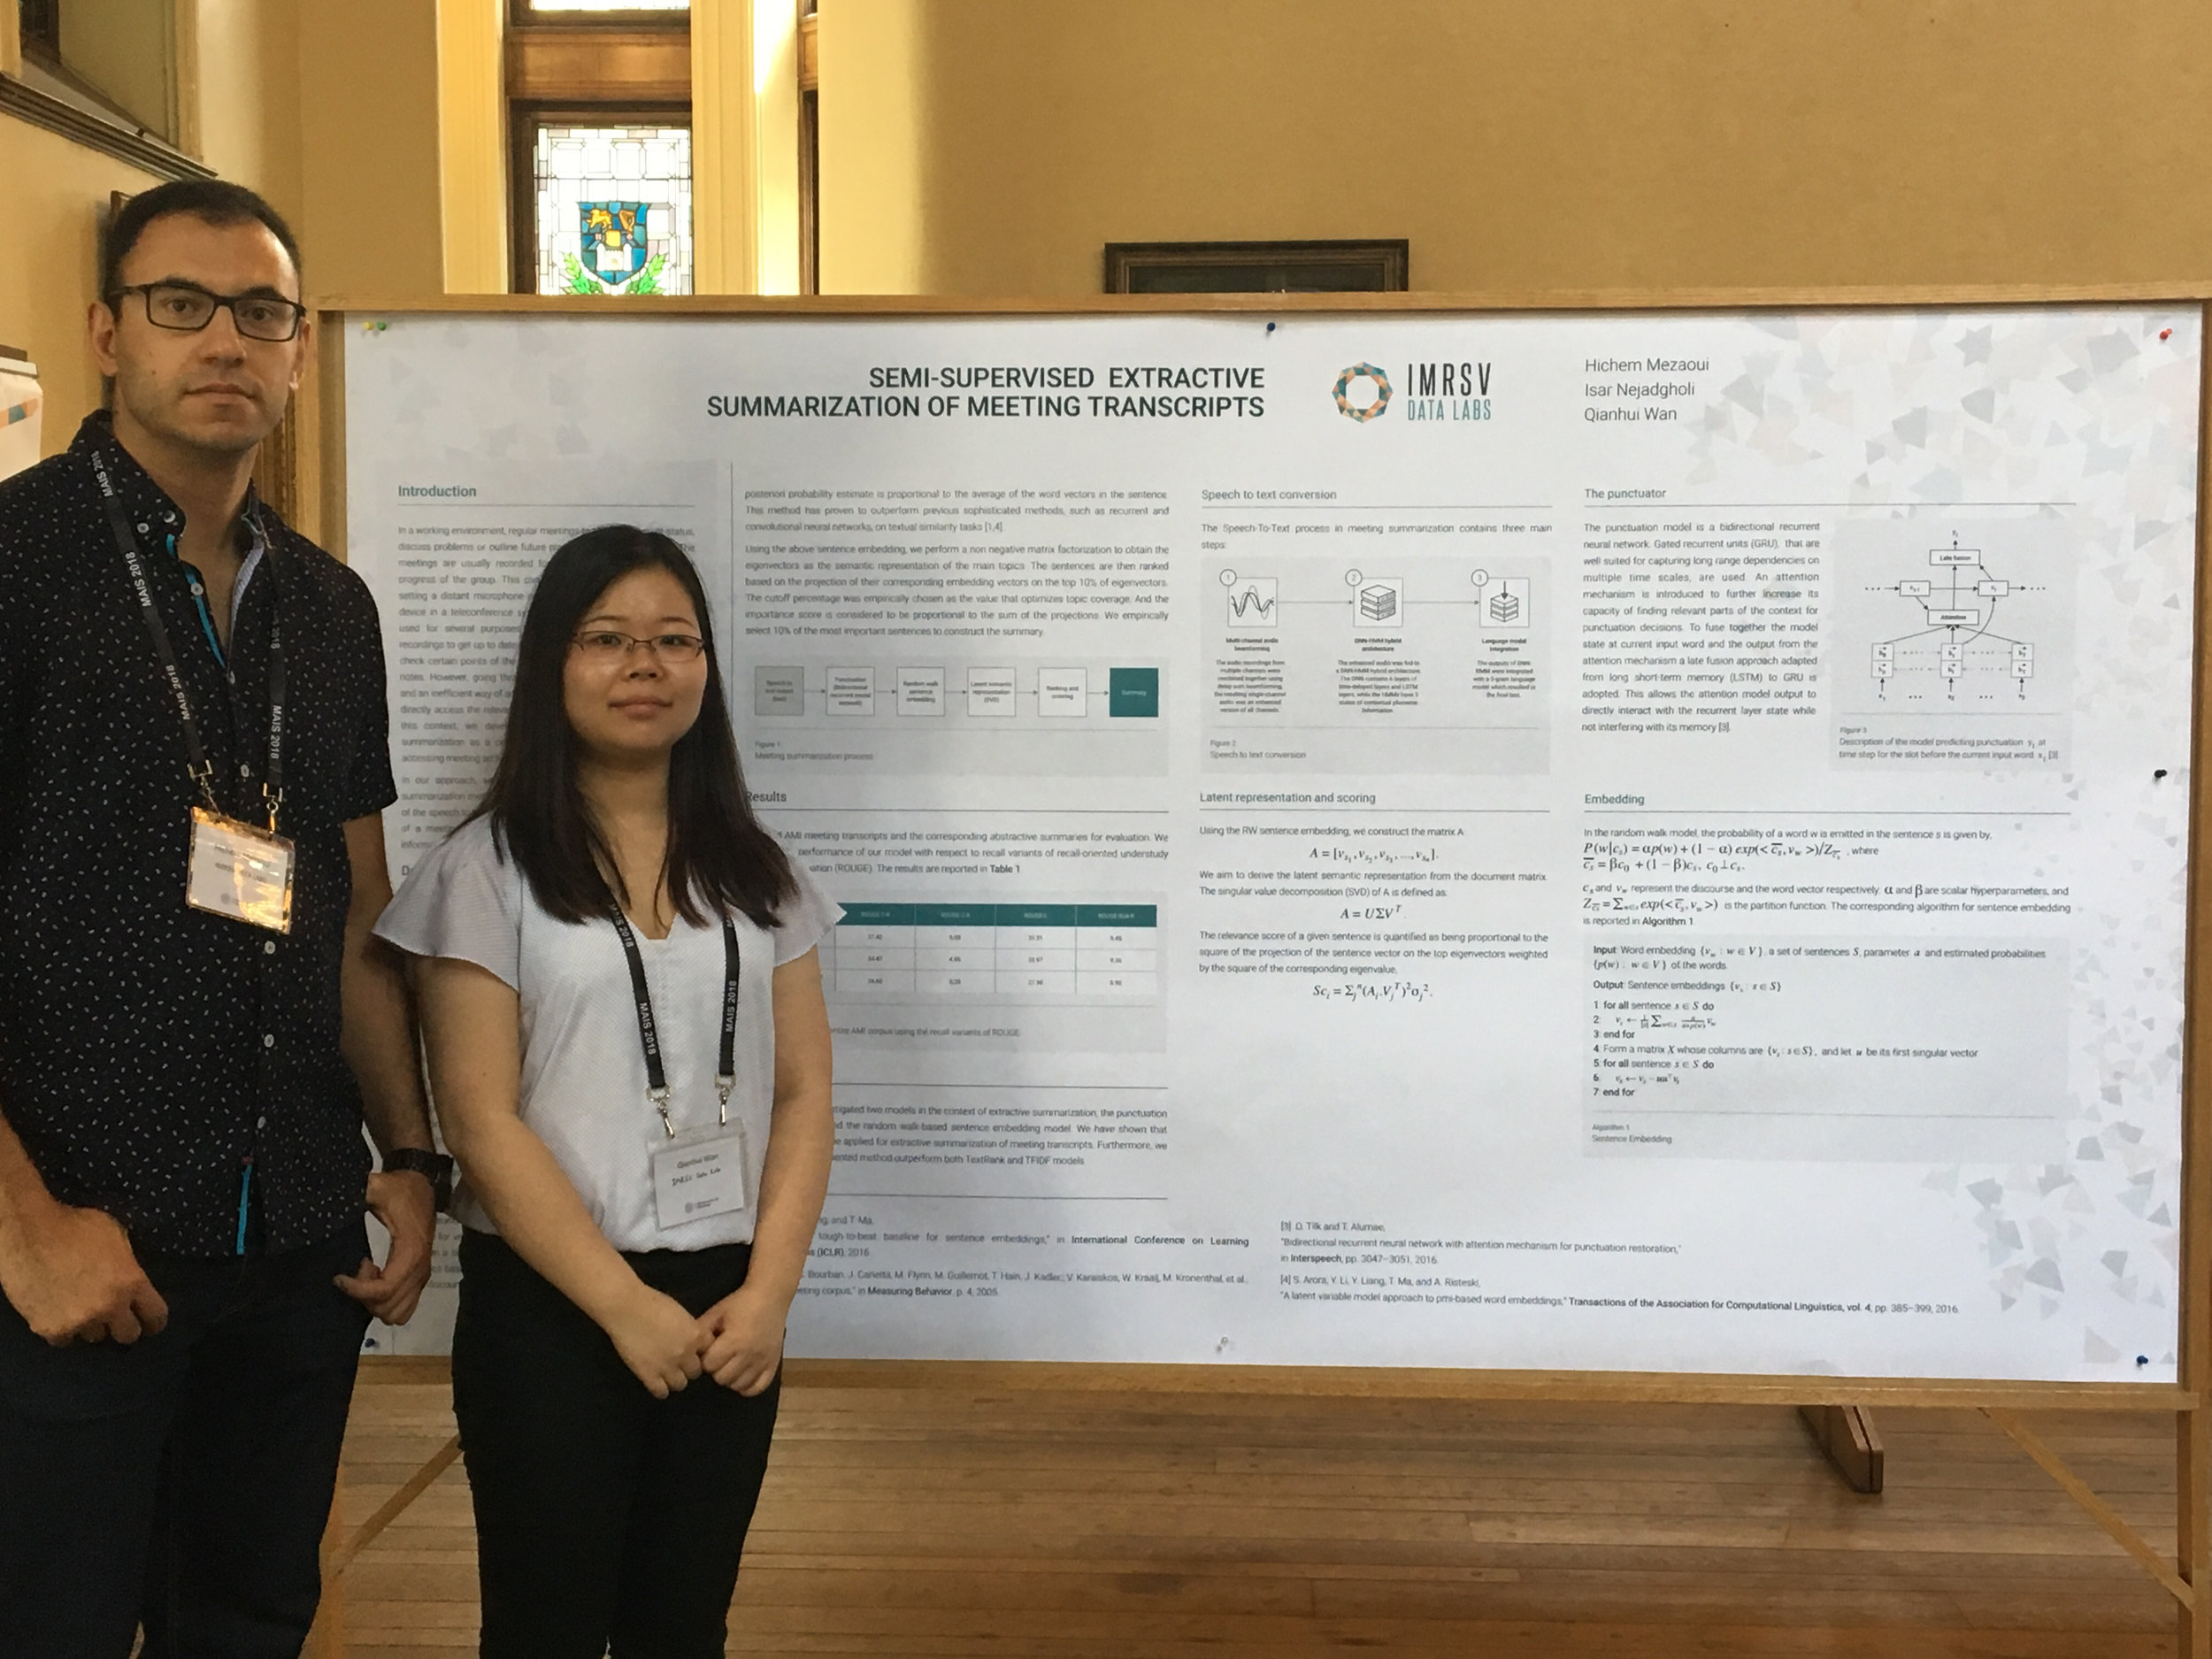 Qianhui and Hichem presenting  Semi-Supervised Extractive Summarization of Meeting Transcripts  on what was described as the largest poster board at the Montreal AI Symposium